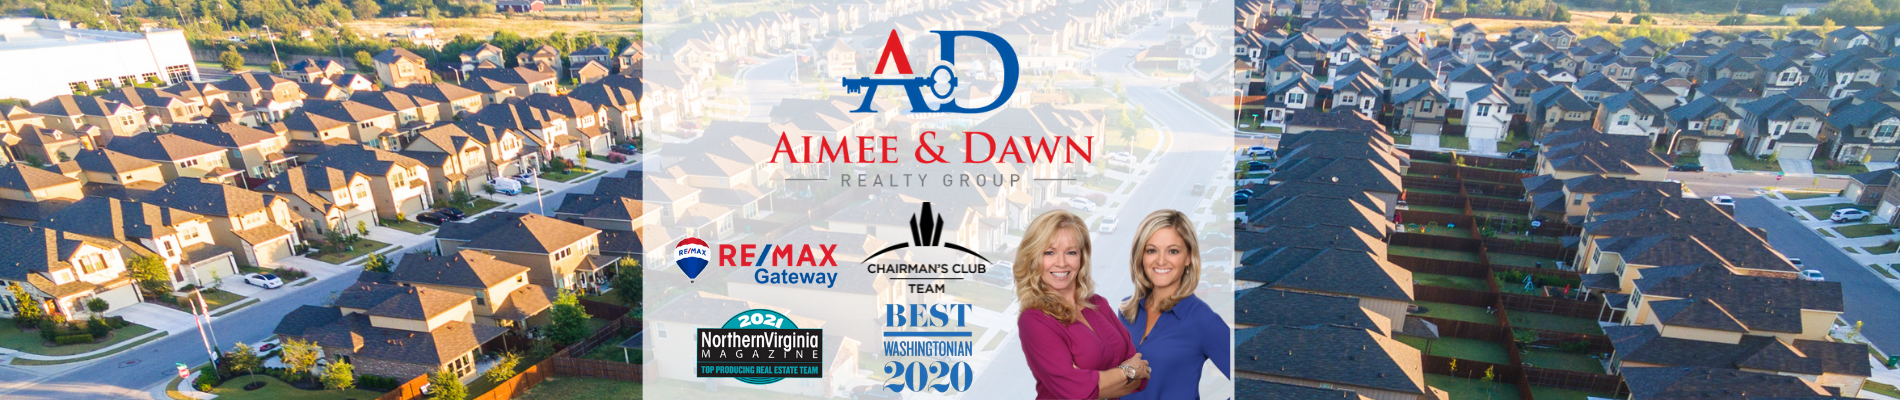 aimee and dawn realty